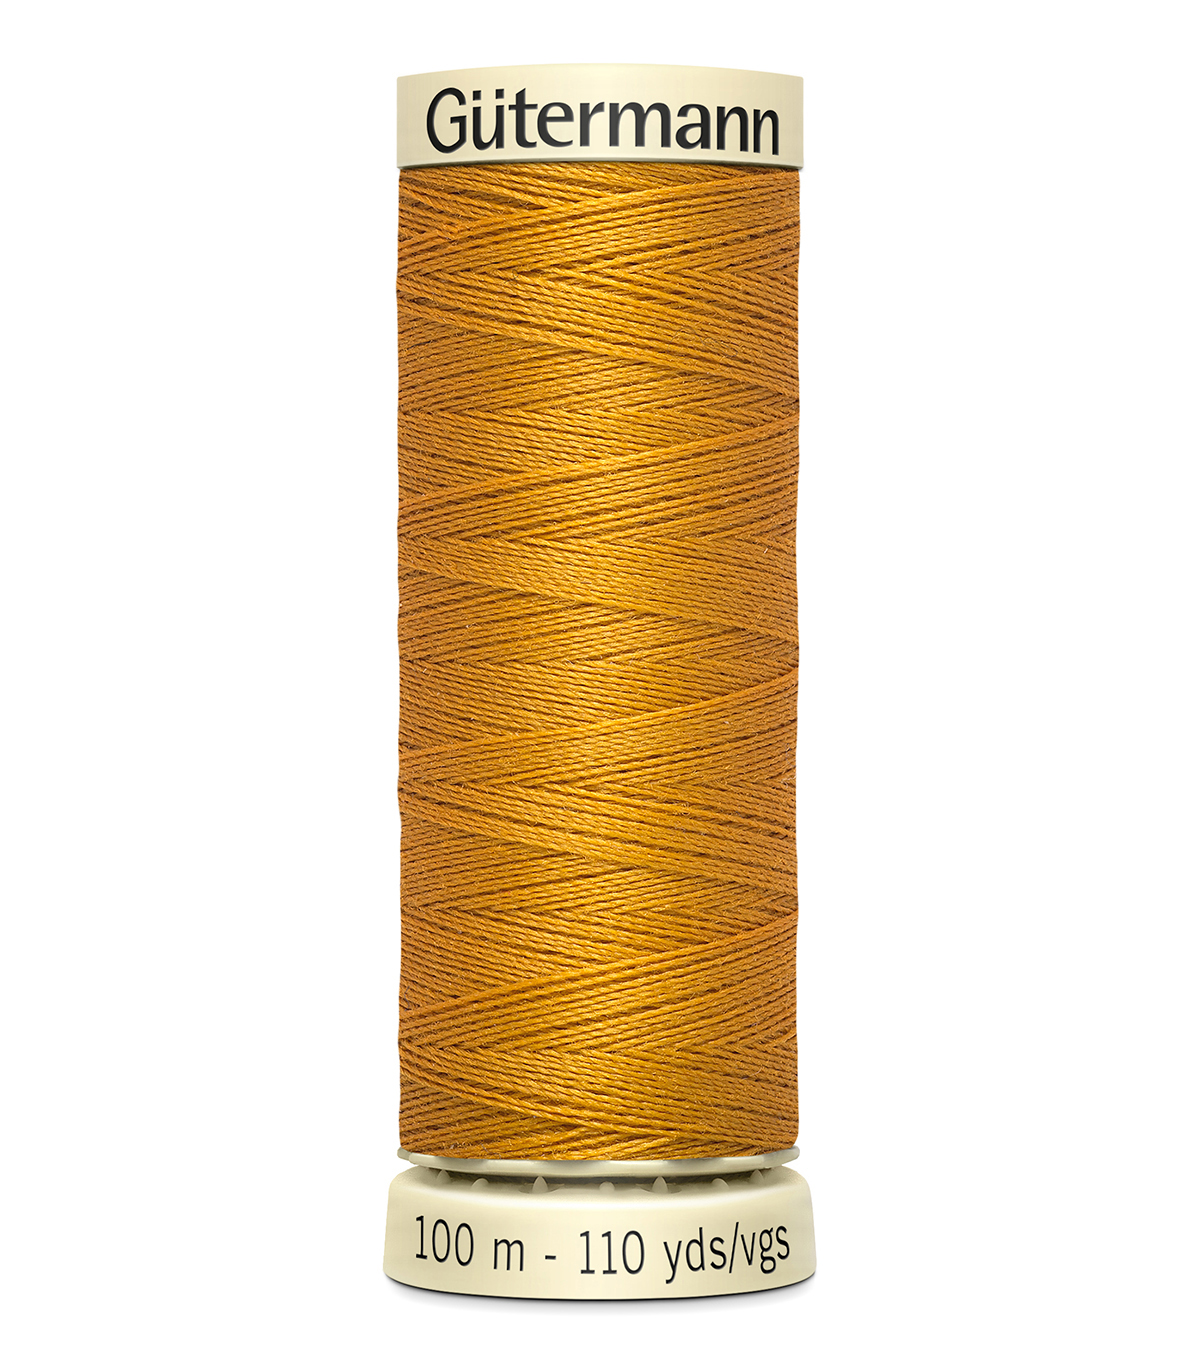 Gutermann Sew All Polyester Thread 110 Yards-Oranges & Yellows , Goldstone #870